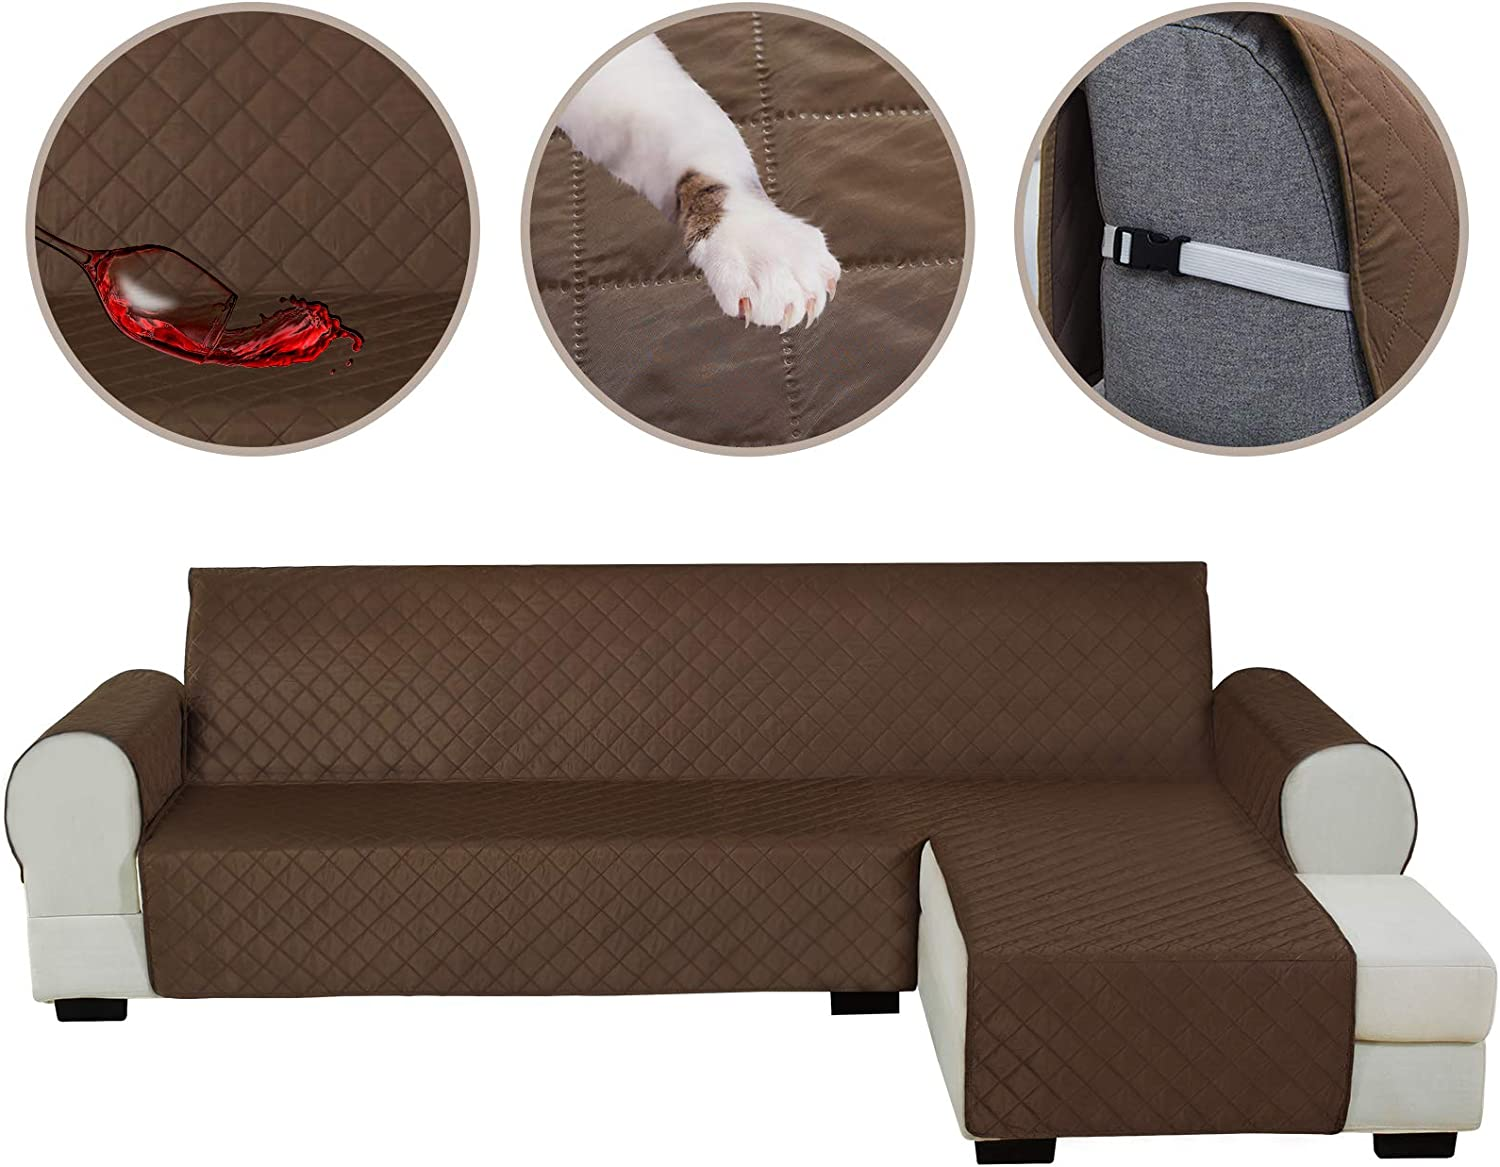 HDCAXKJ Sectional Couch Covers for Dogs Water Resistant L Shape Sofa Cover Pet Friendly Sectional Slipcovers Living Room Reversible Non Slip Furniture Protector with Straps Washable (Coffee, Large)